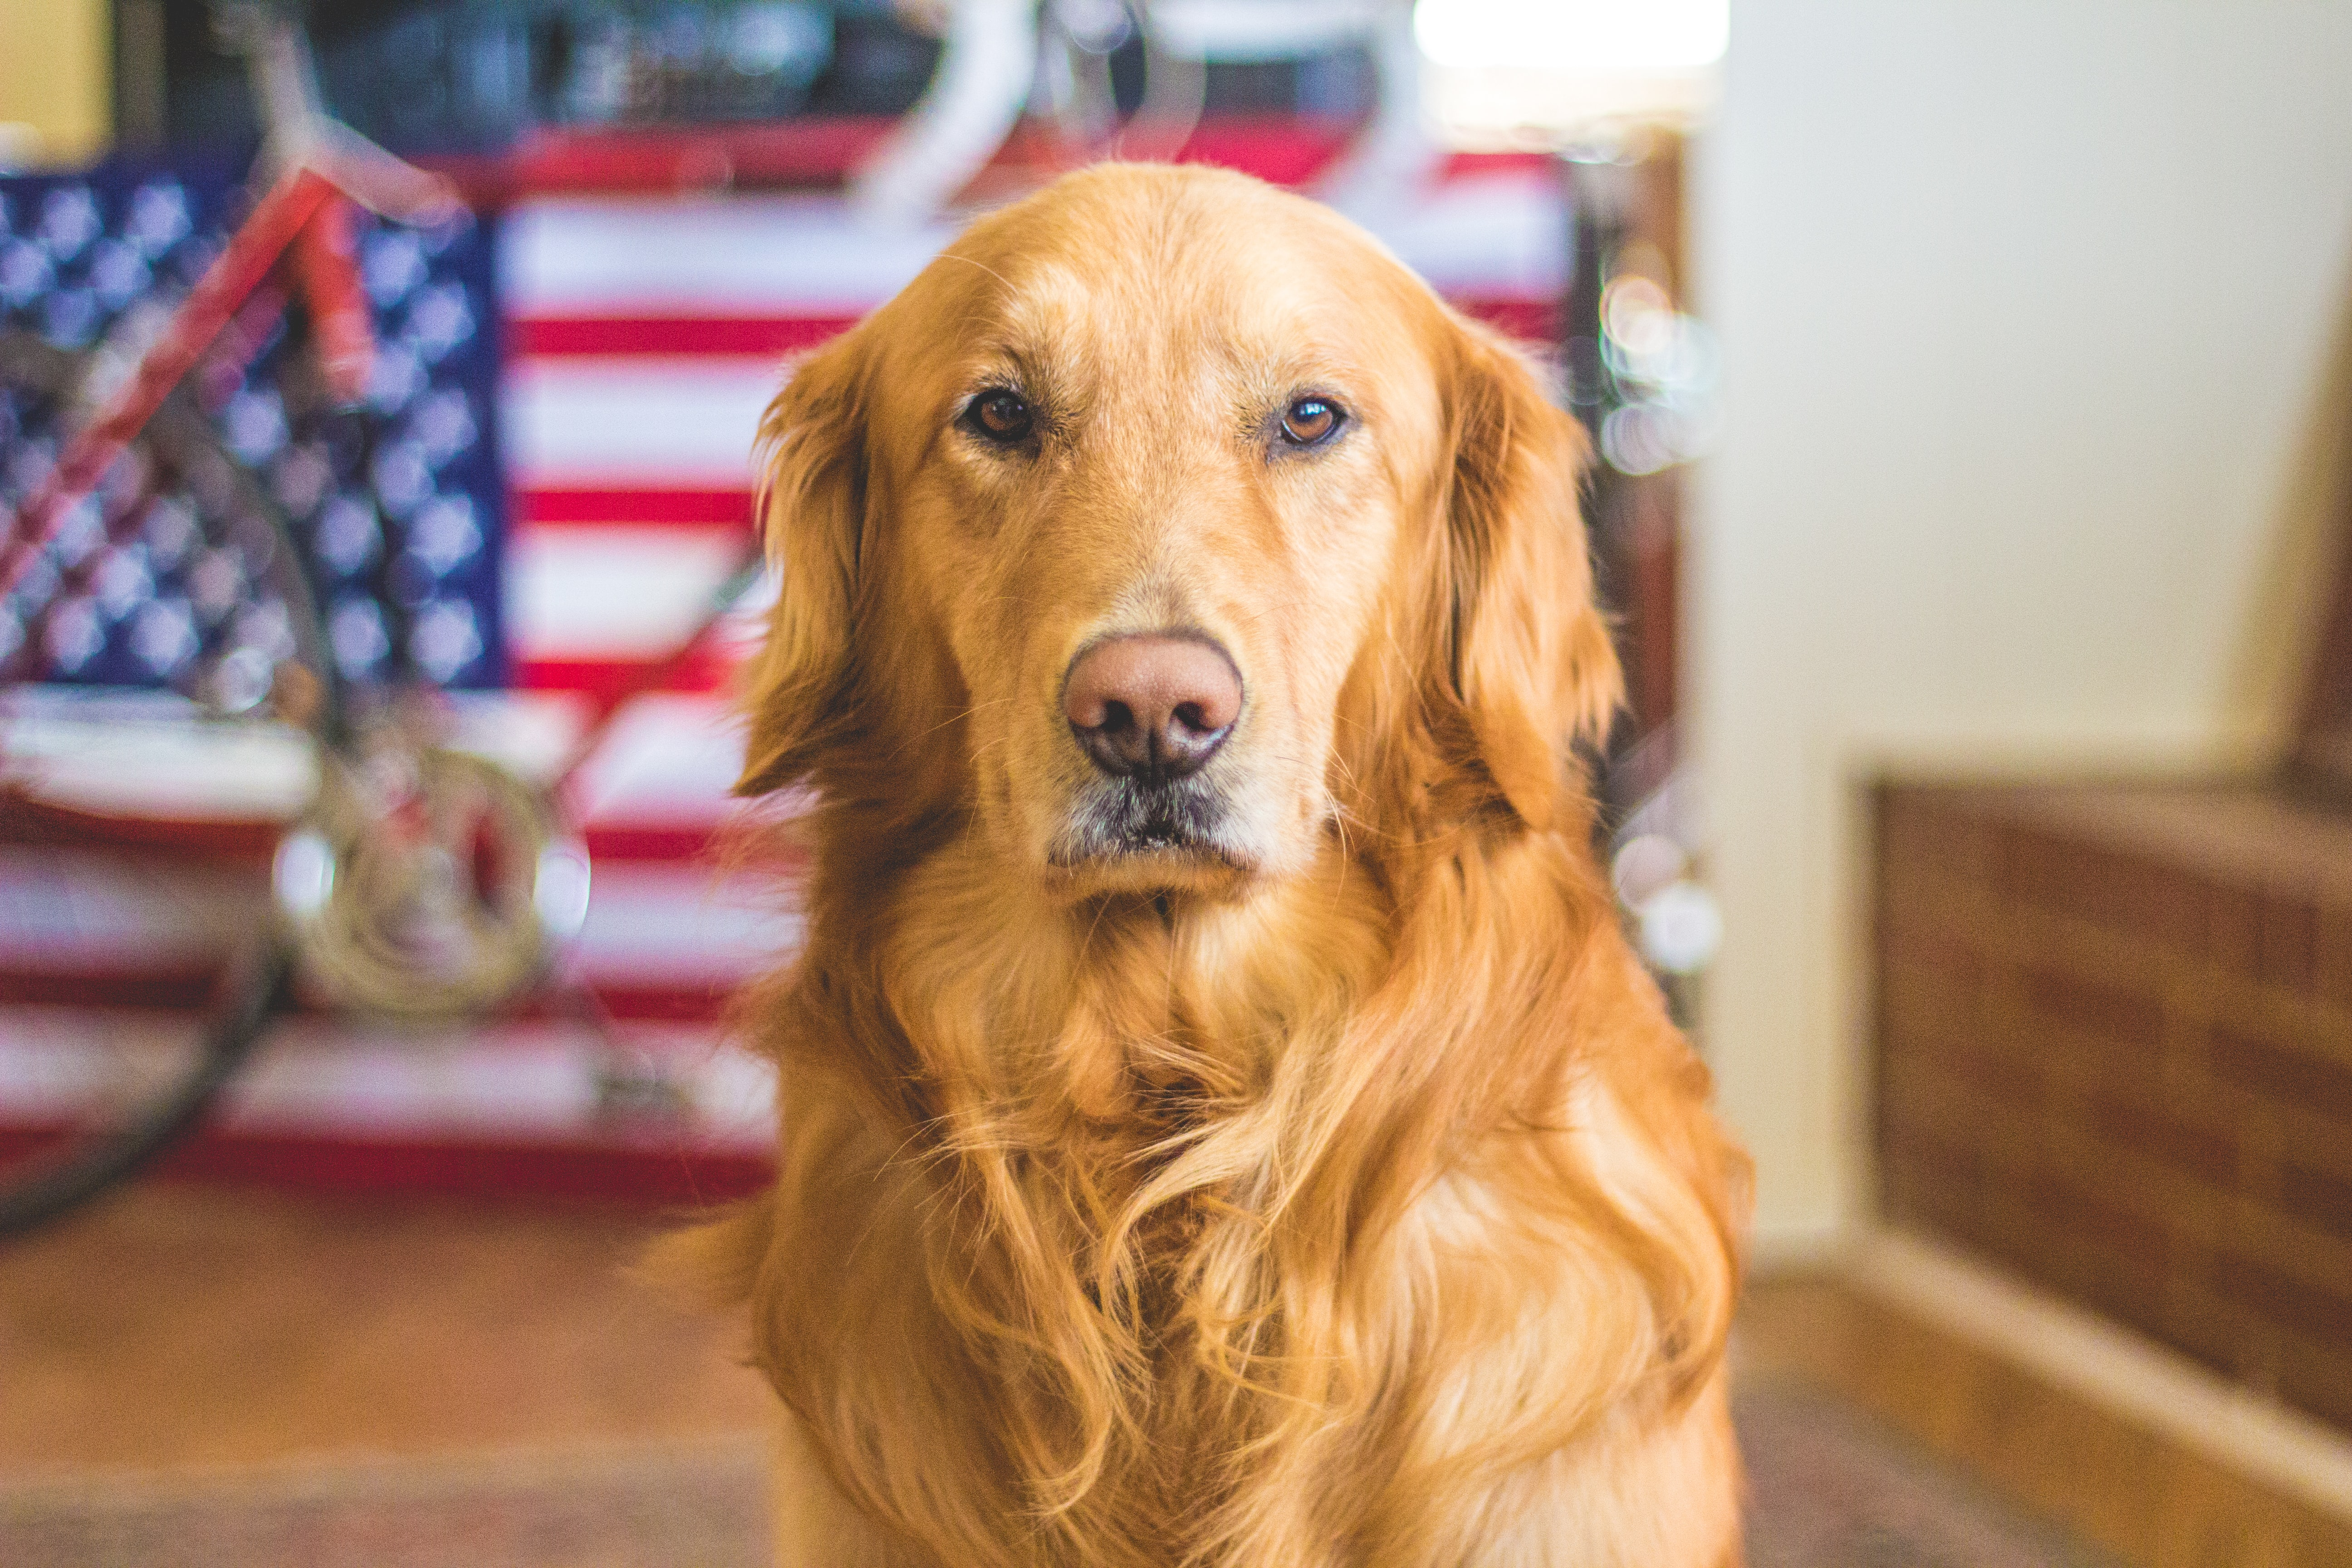 A golden retreiver dog with an American flag and bicycle behind him